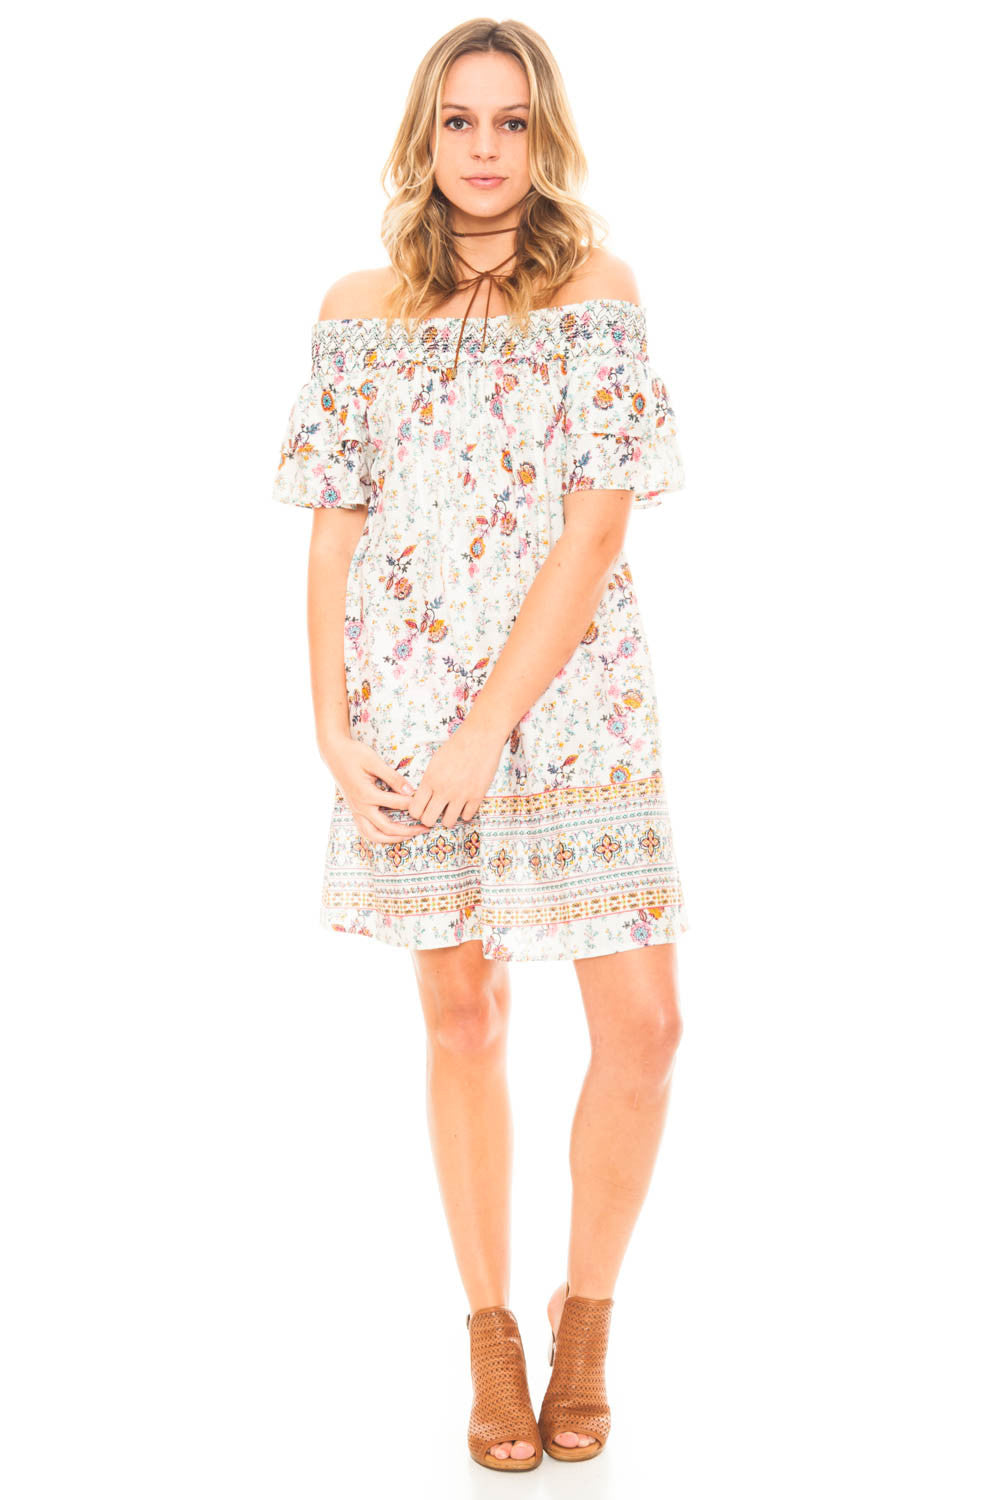 Dress - Off Shoulder Printed Dress with a Ruffled Sleeve by En Creme